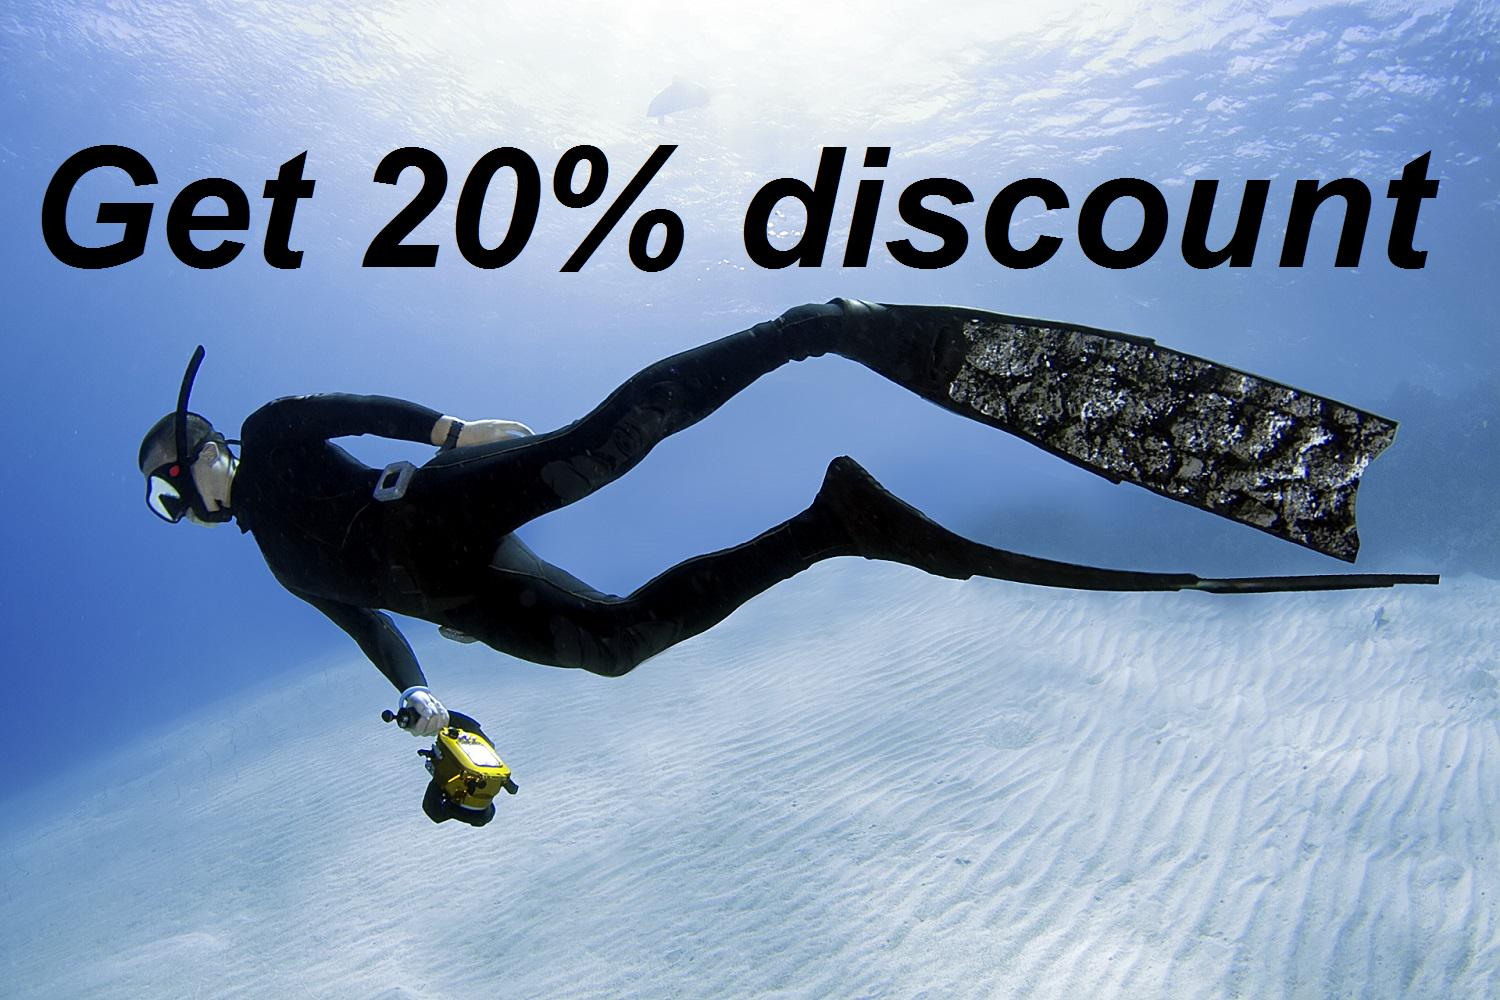 Shop with the excellent LeaderFins promo codes & offers at a discount price.